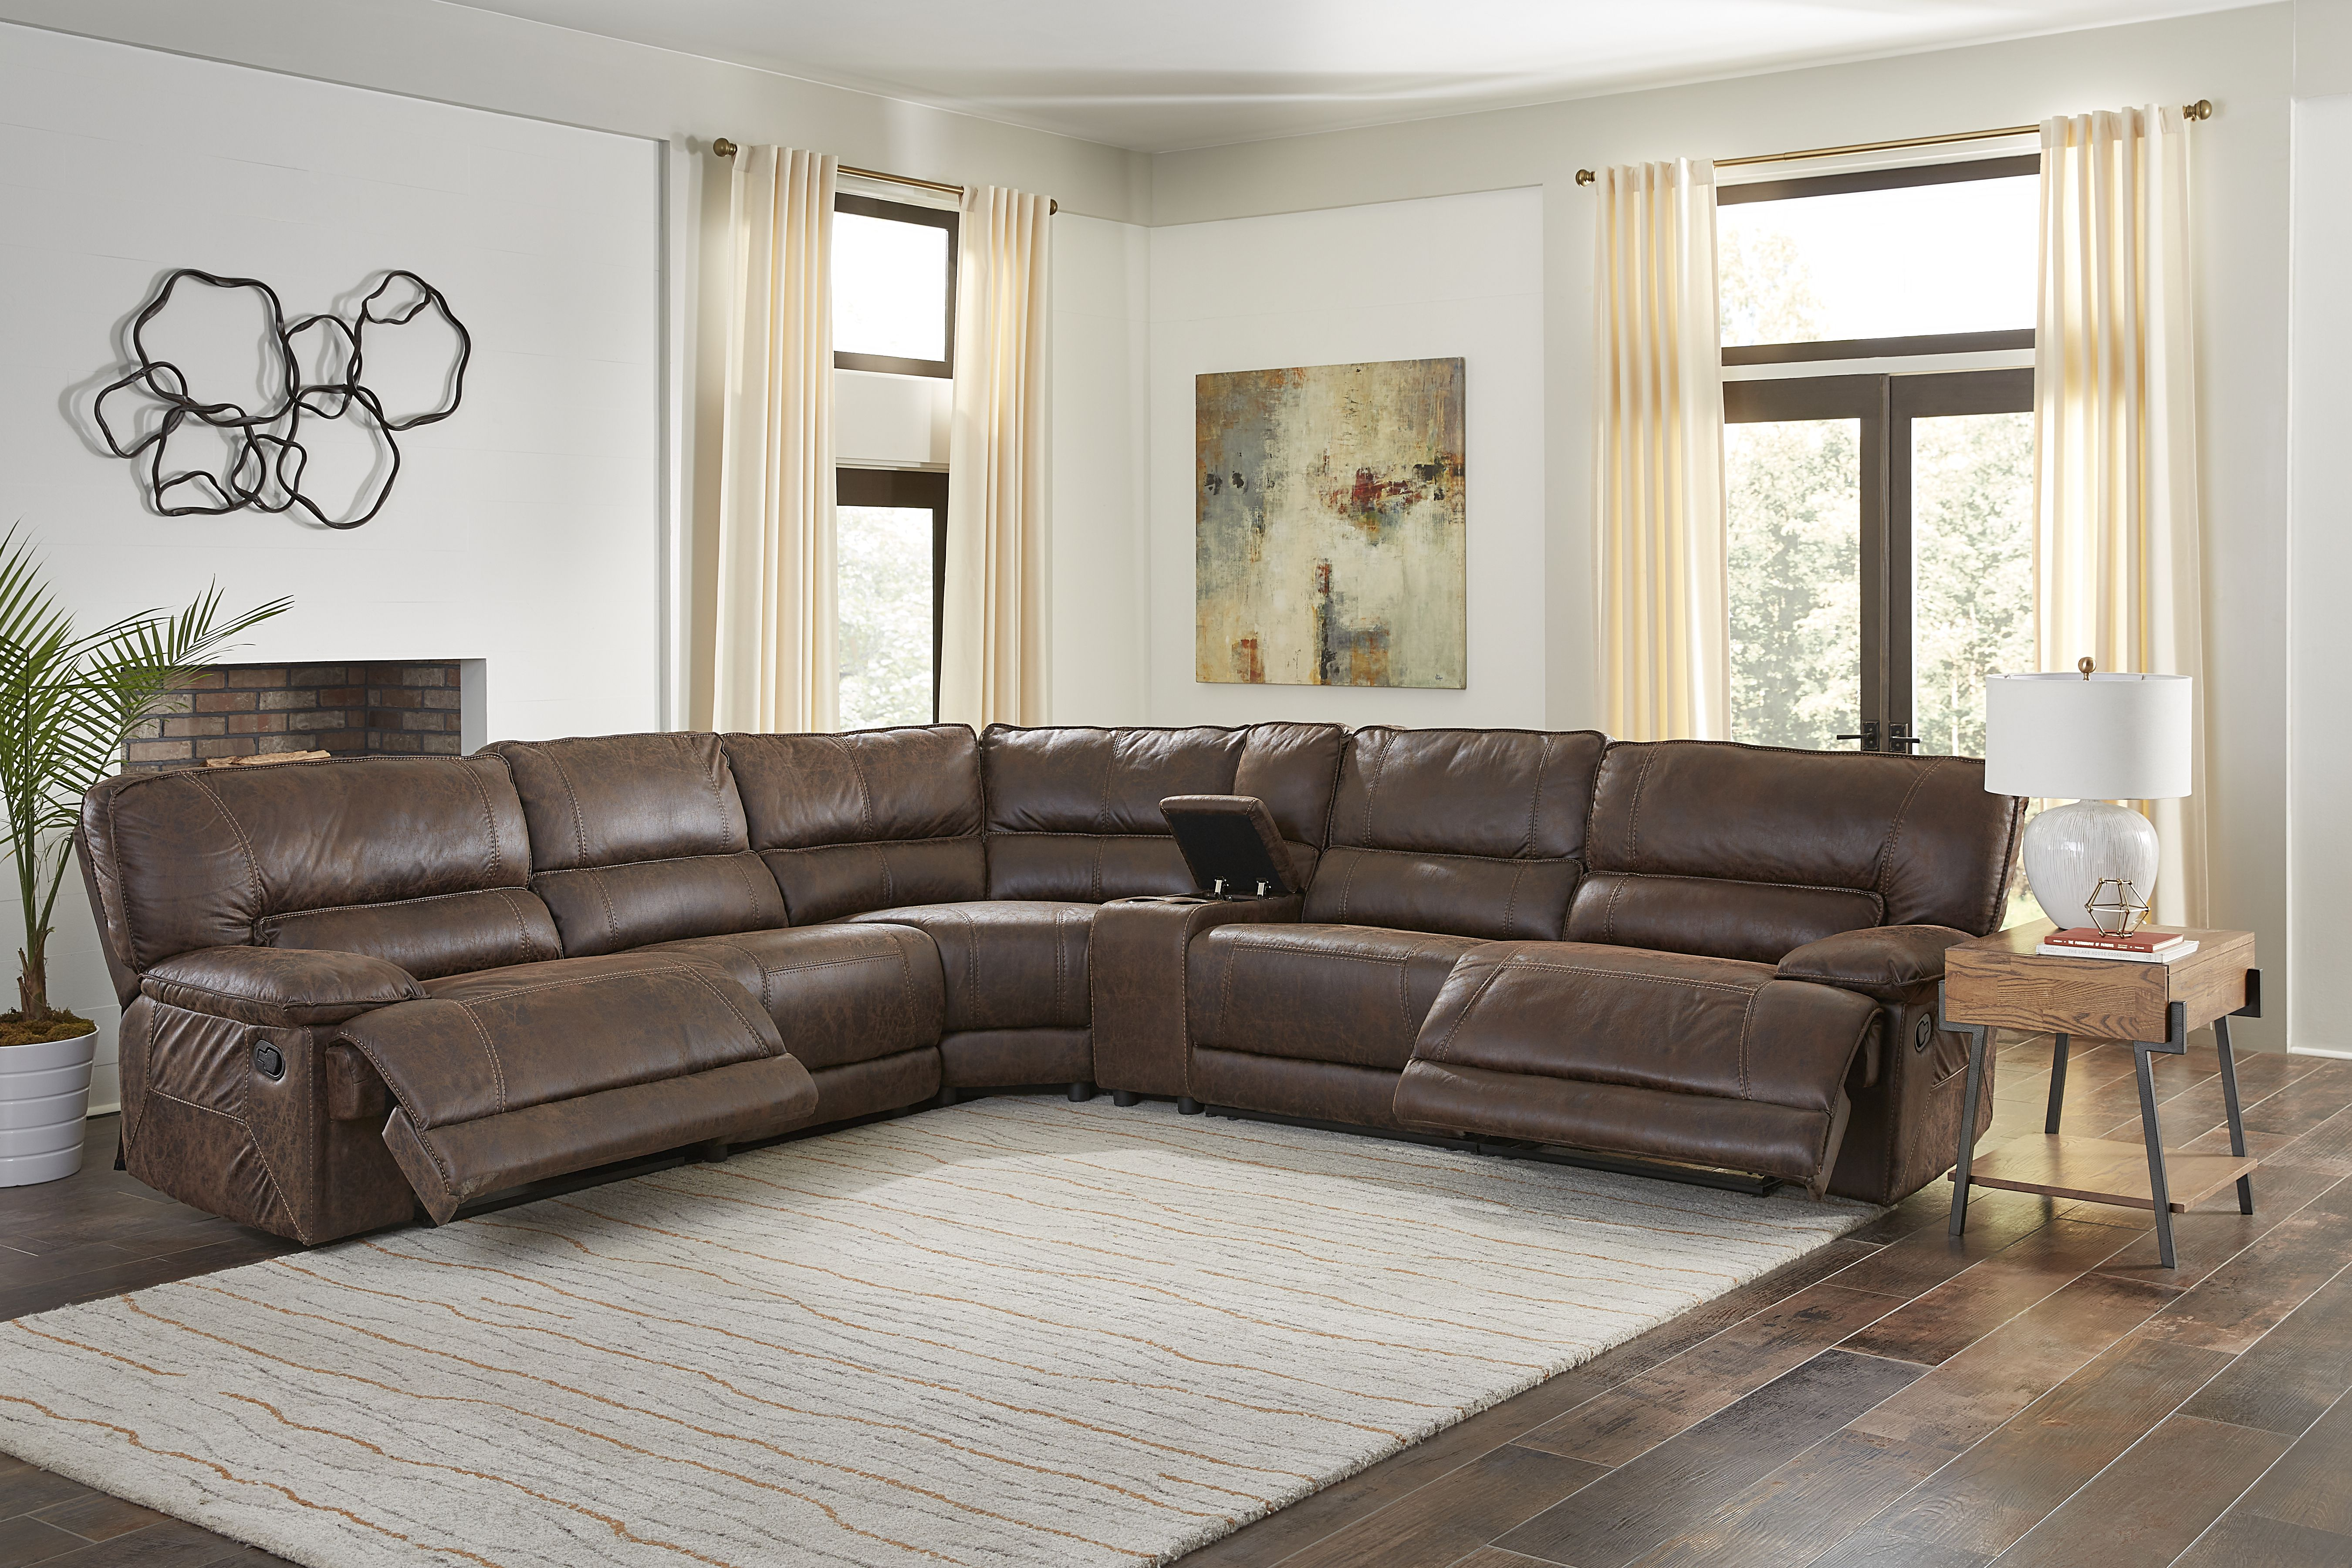 8002 canyon Silt 6 pc sectional